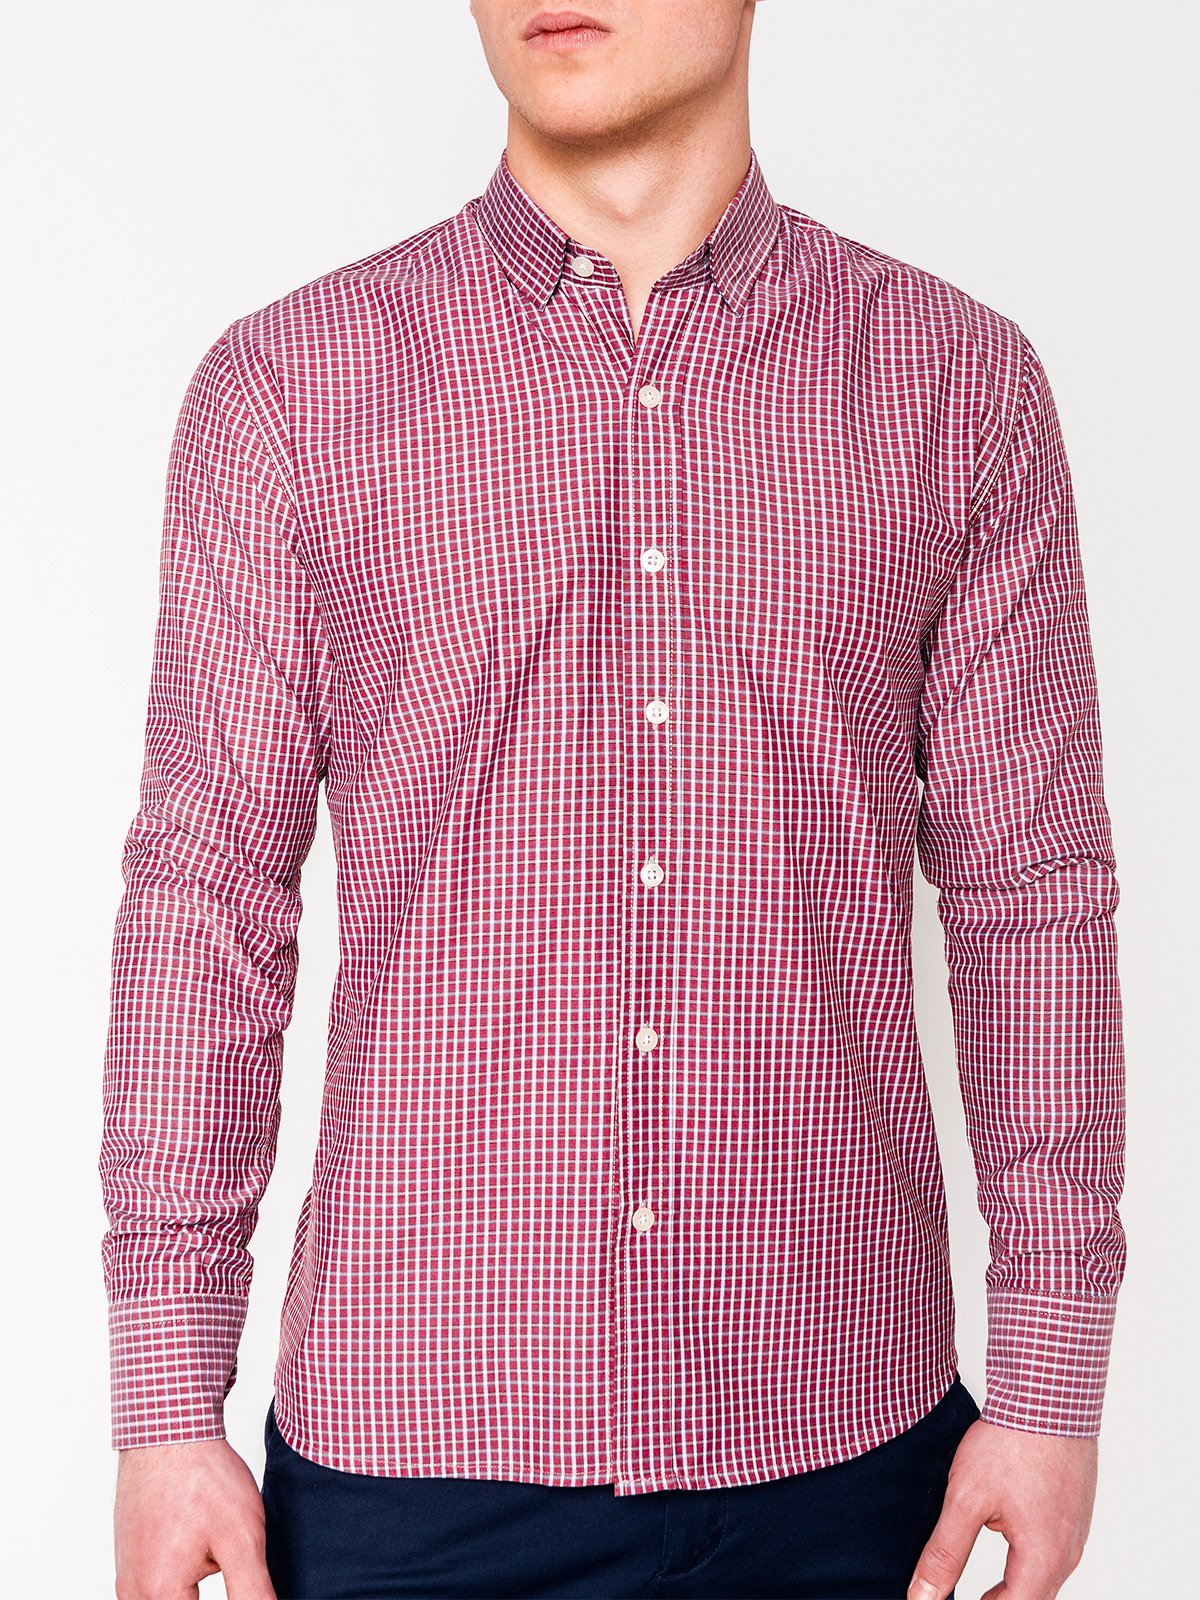 Ombre Clothing Men's check shirt with long sleeves K437